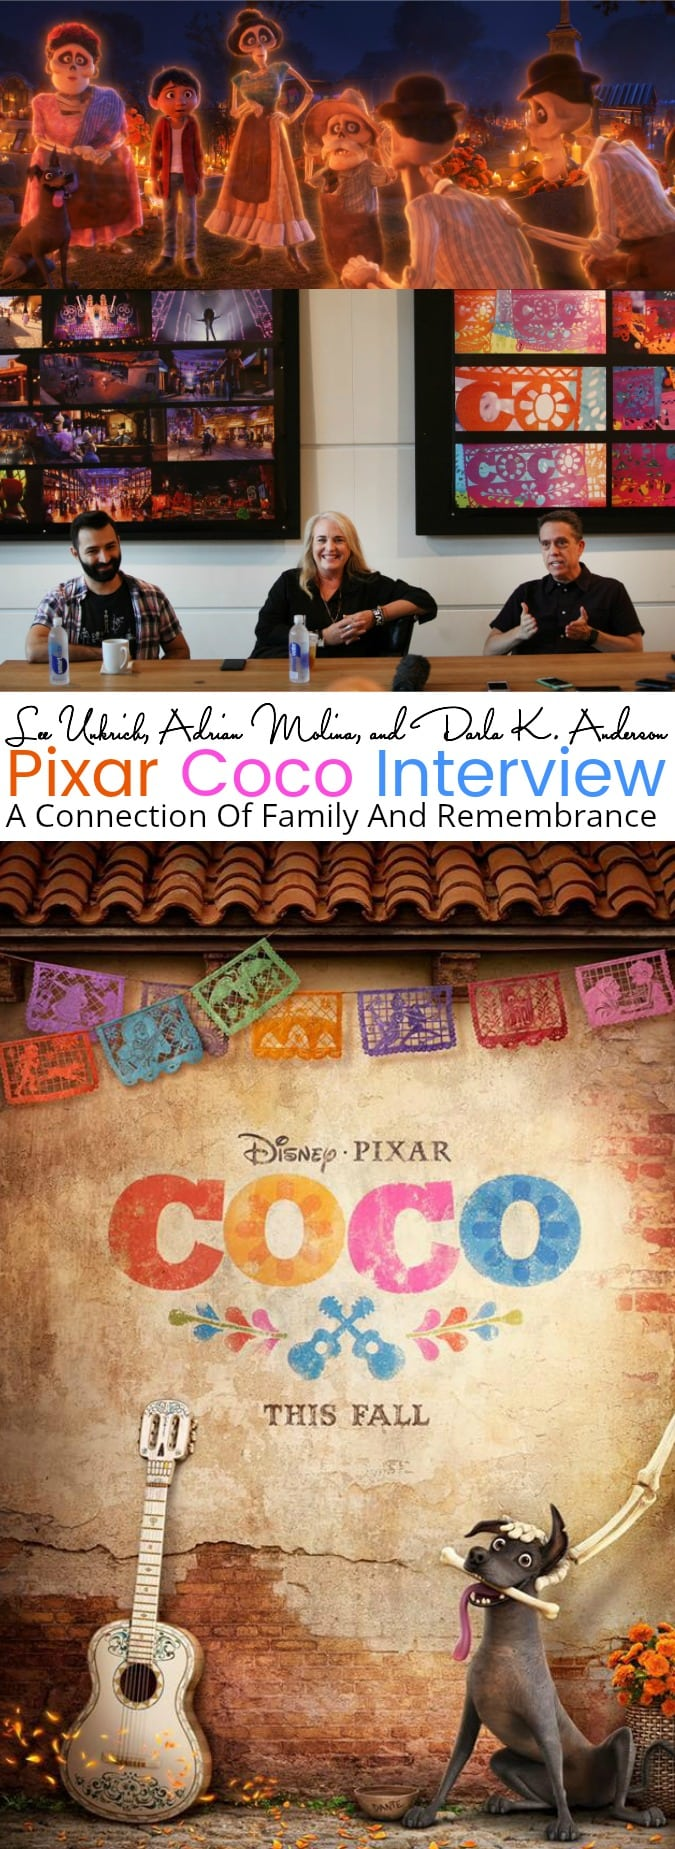 Being able to have an Exclusive Interview with Director Lee Unkrich, Writer, and Co-Director Adrian Molina and Producer Darla K. Anderson how the process of COCO came together was one that many future animators and Pixar fans would have the privilege to experience. - simplytodaylife.com